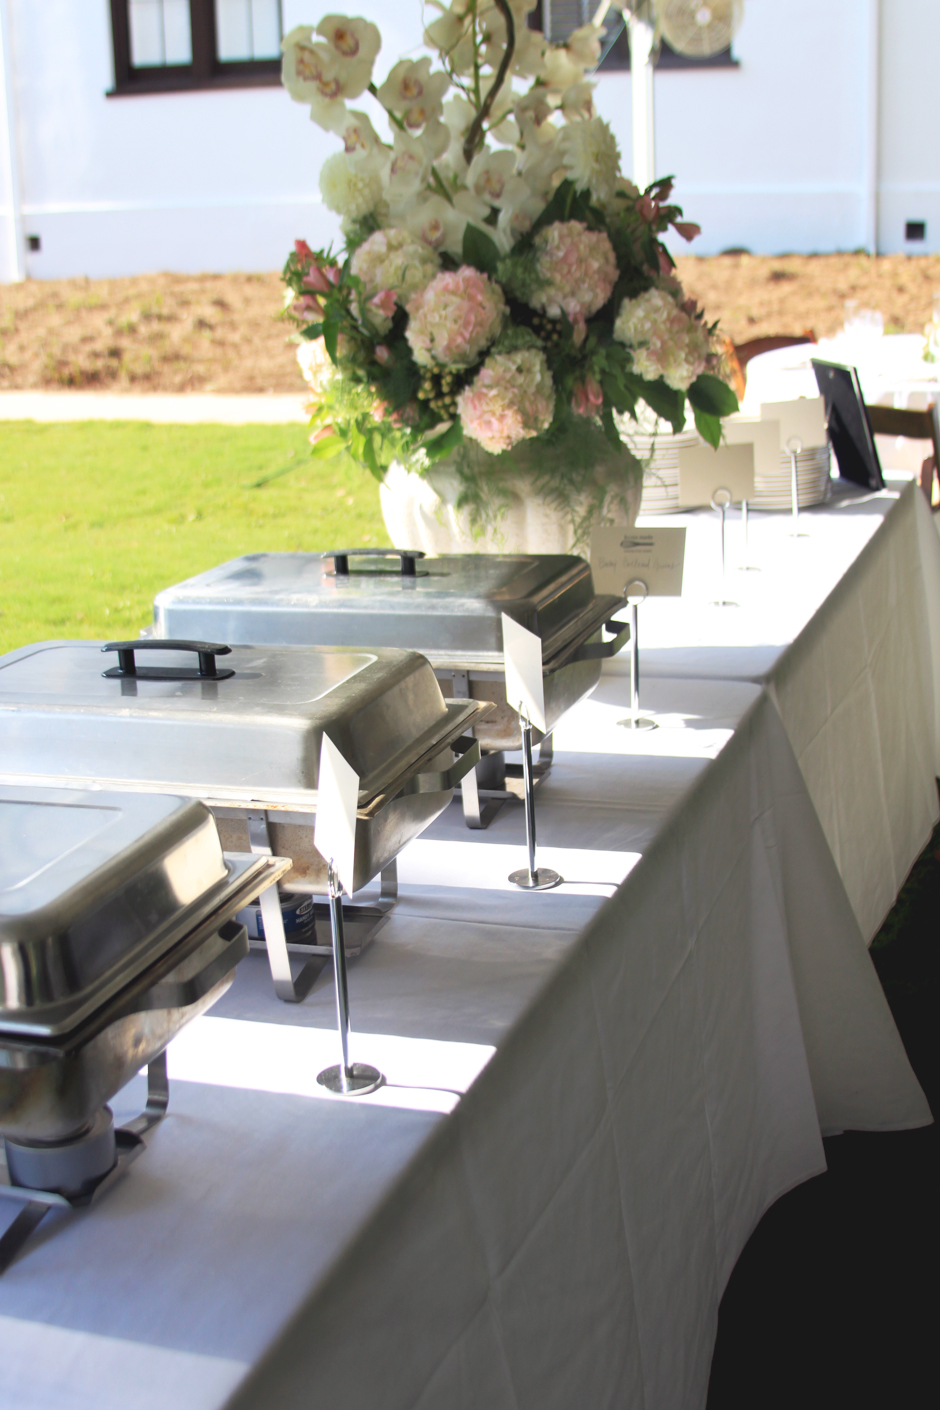 Oconee Events - Corporate Food and Catering Rentals in Athens, Georgia